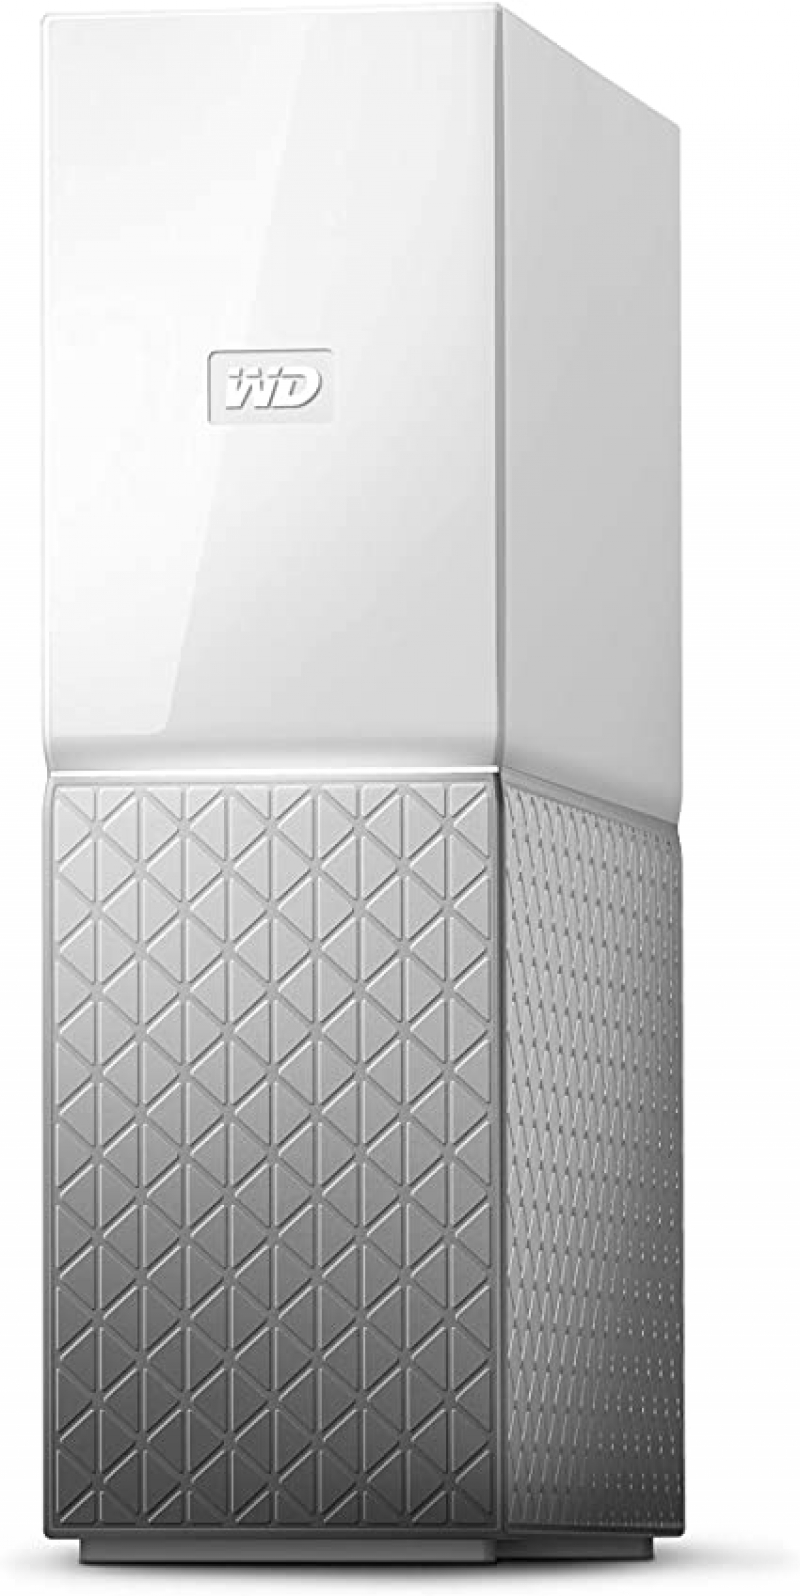 ihocon: WD 8TB My Cloud Home Personal Cloud, Network Attached Storage 家用個人雲端硬碟